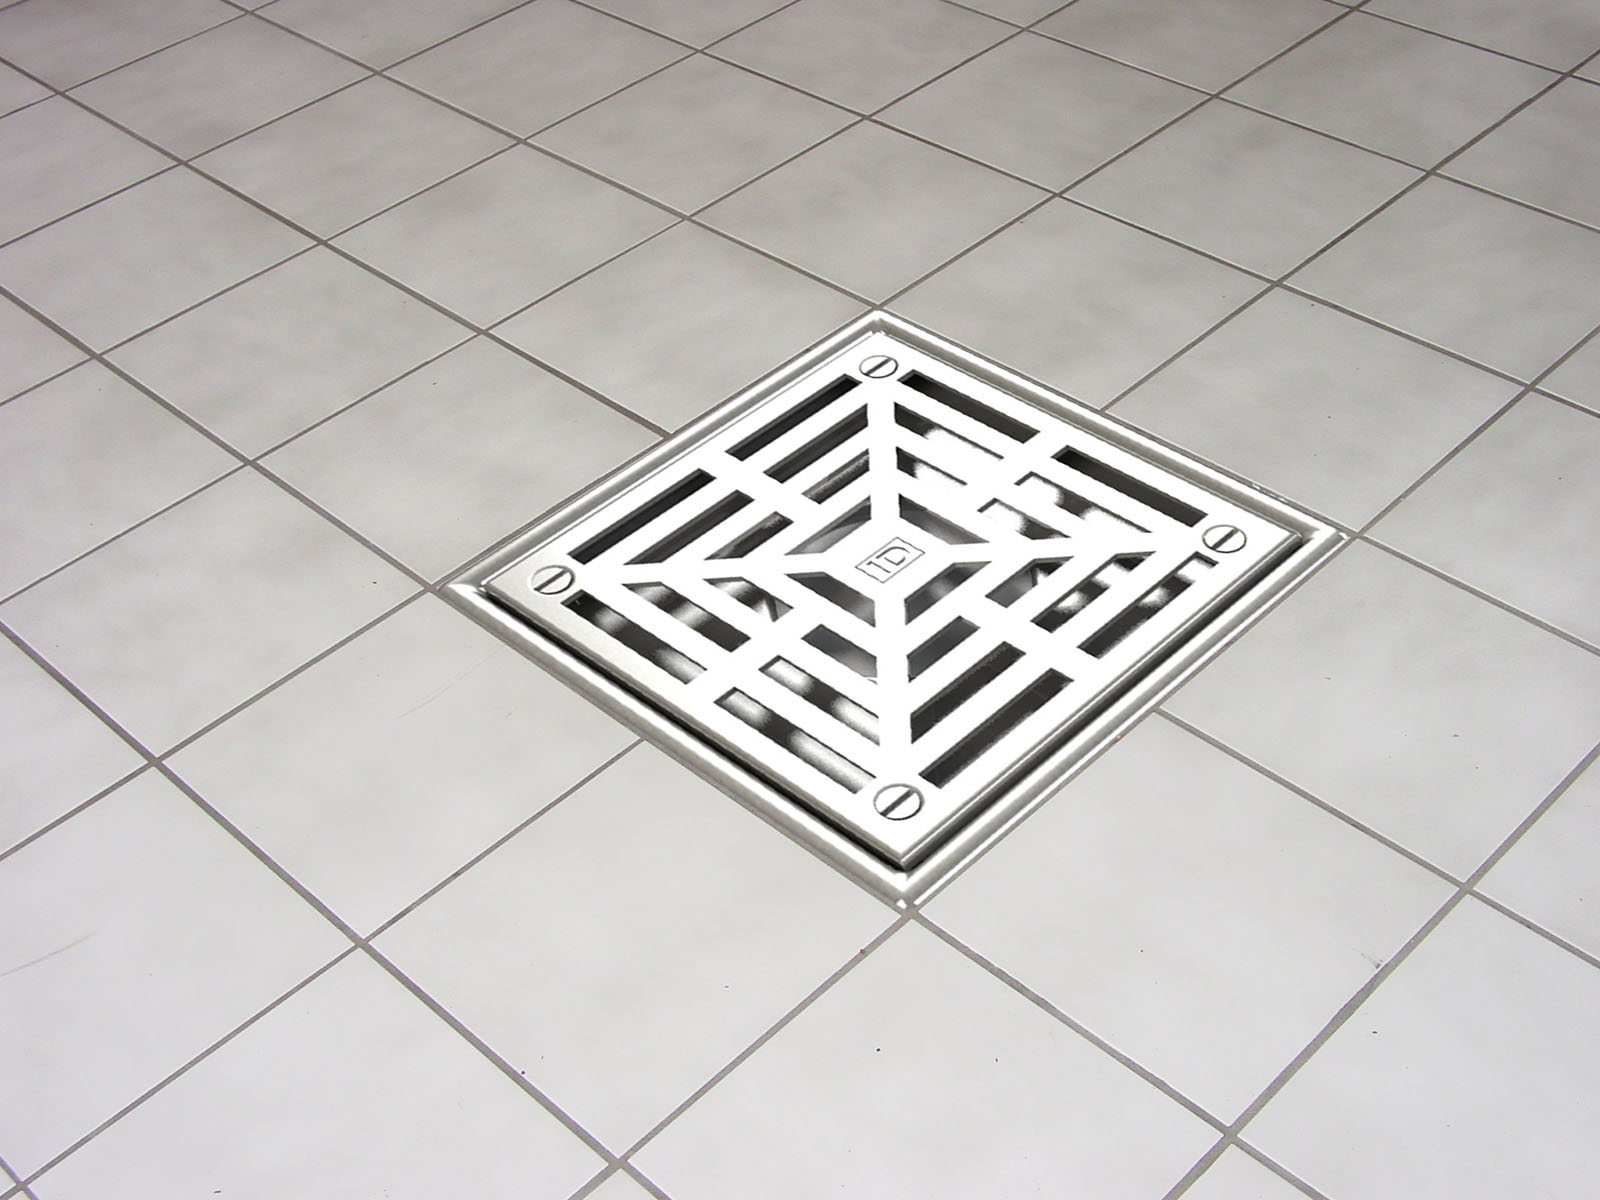 featured drains brand copy fowler infinity ever in hr designbites caroma kbis first program at drain